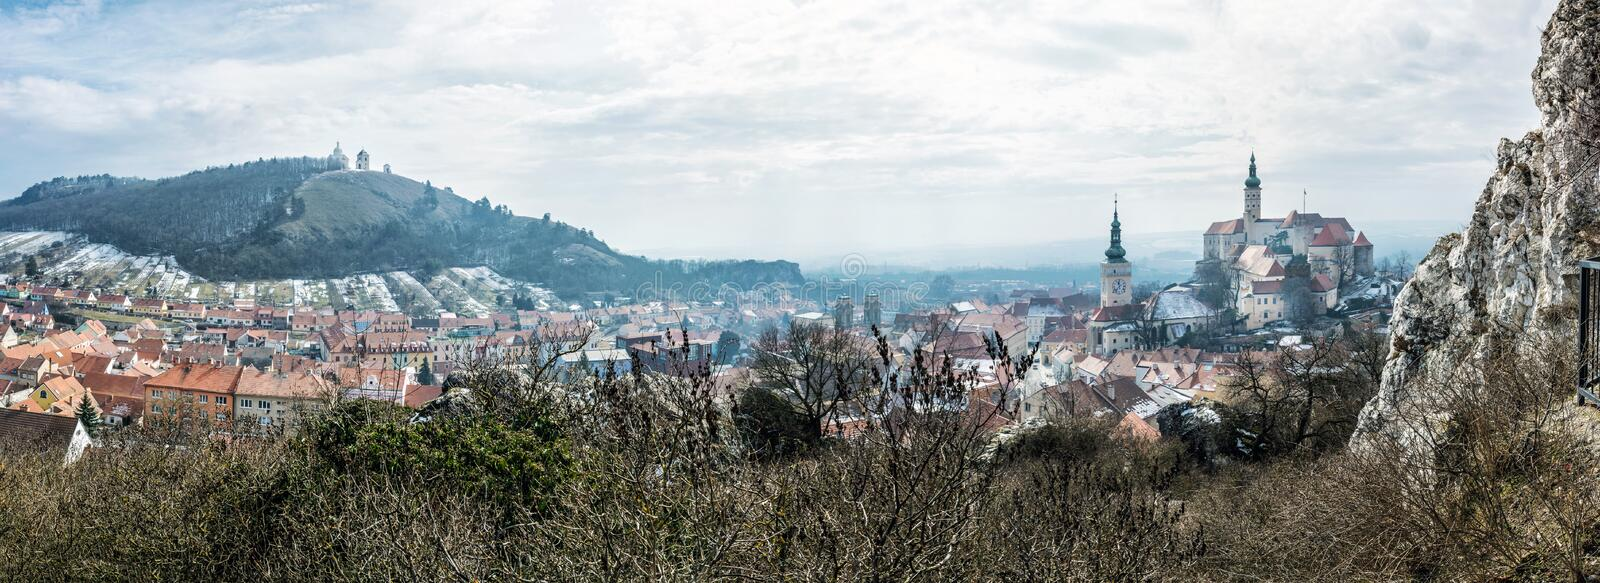 Mikulov with castle, holy hill and old town centre, Czech republic stock photography